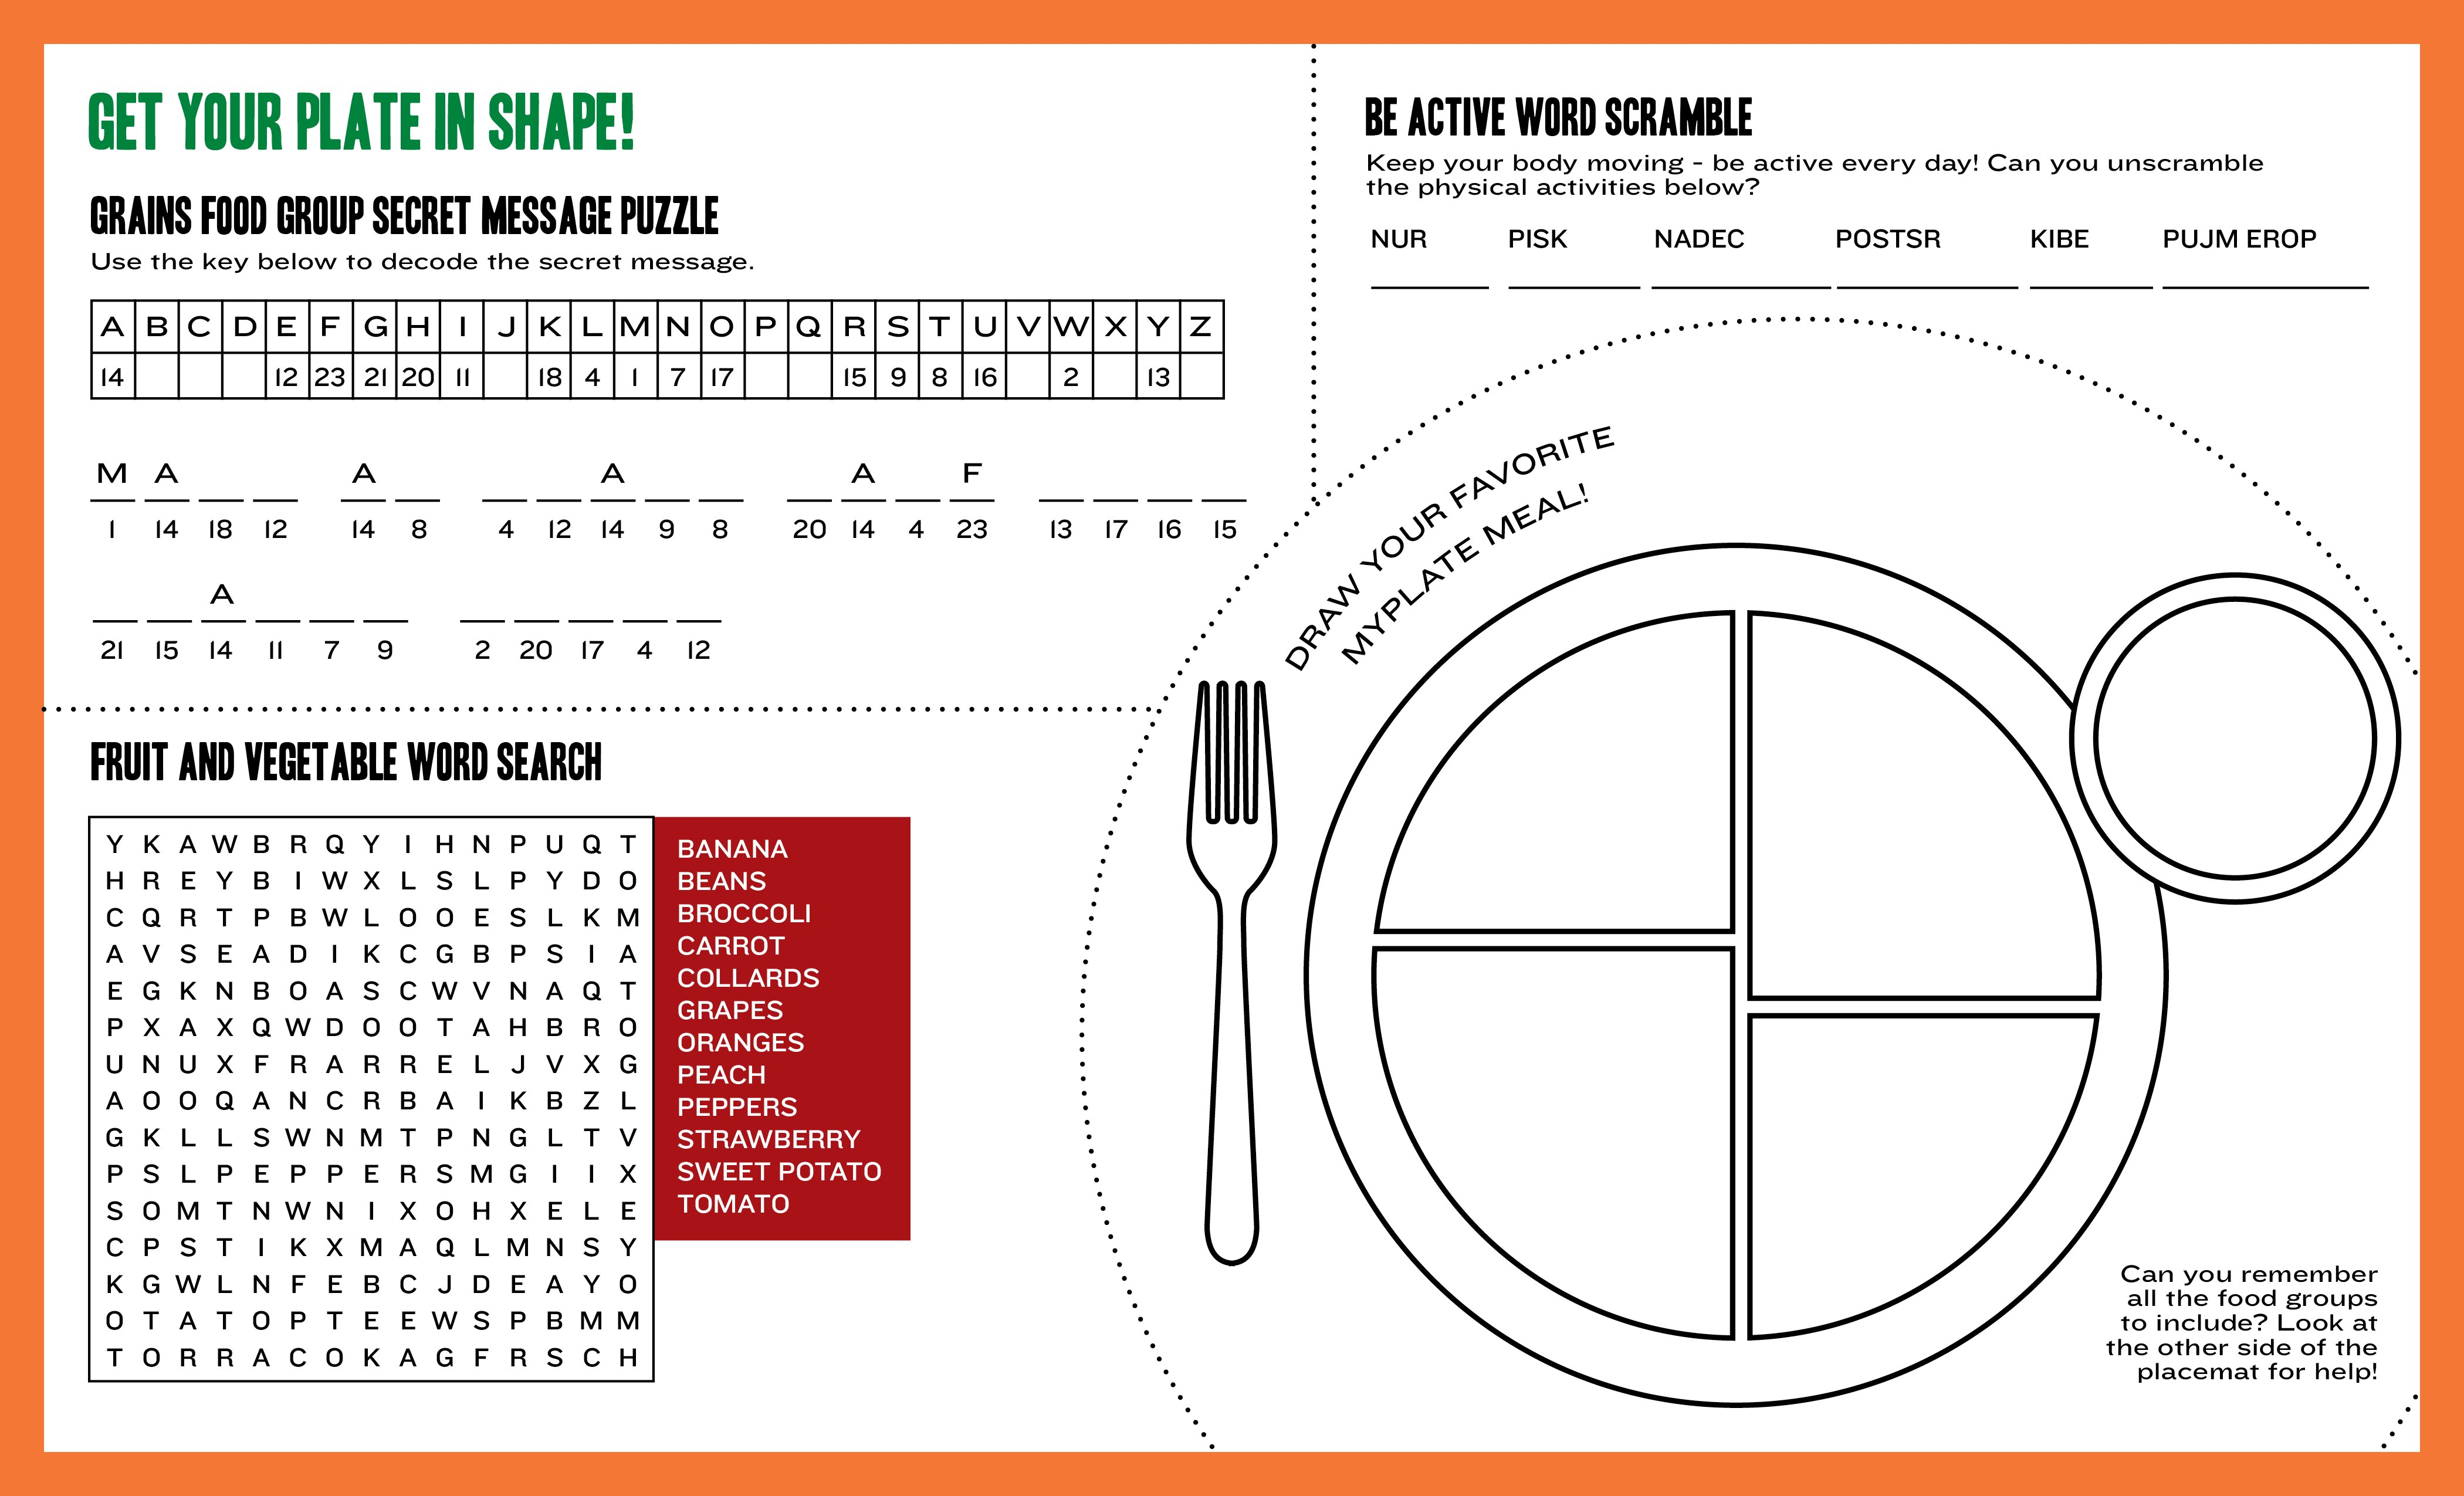 Healthy Plate Template. Empty Food Plate Template Healthy Eating | Choose My Plate Printable Worksheets